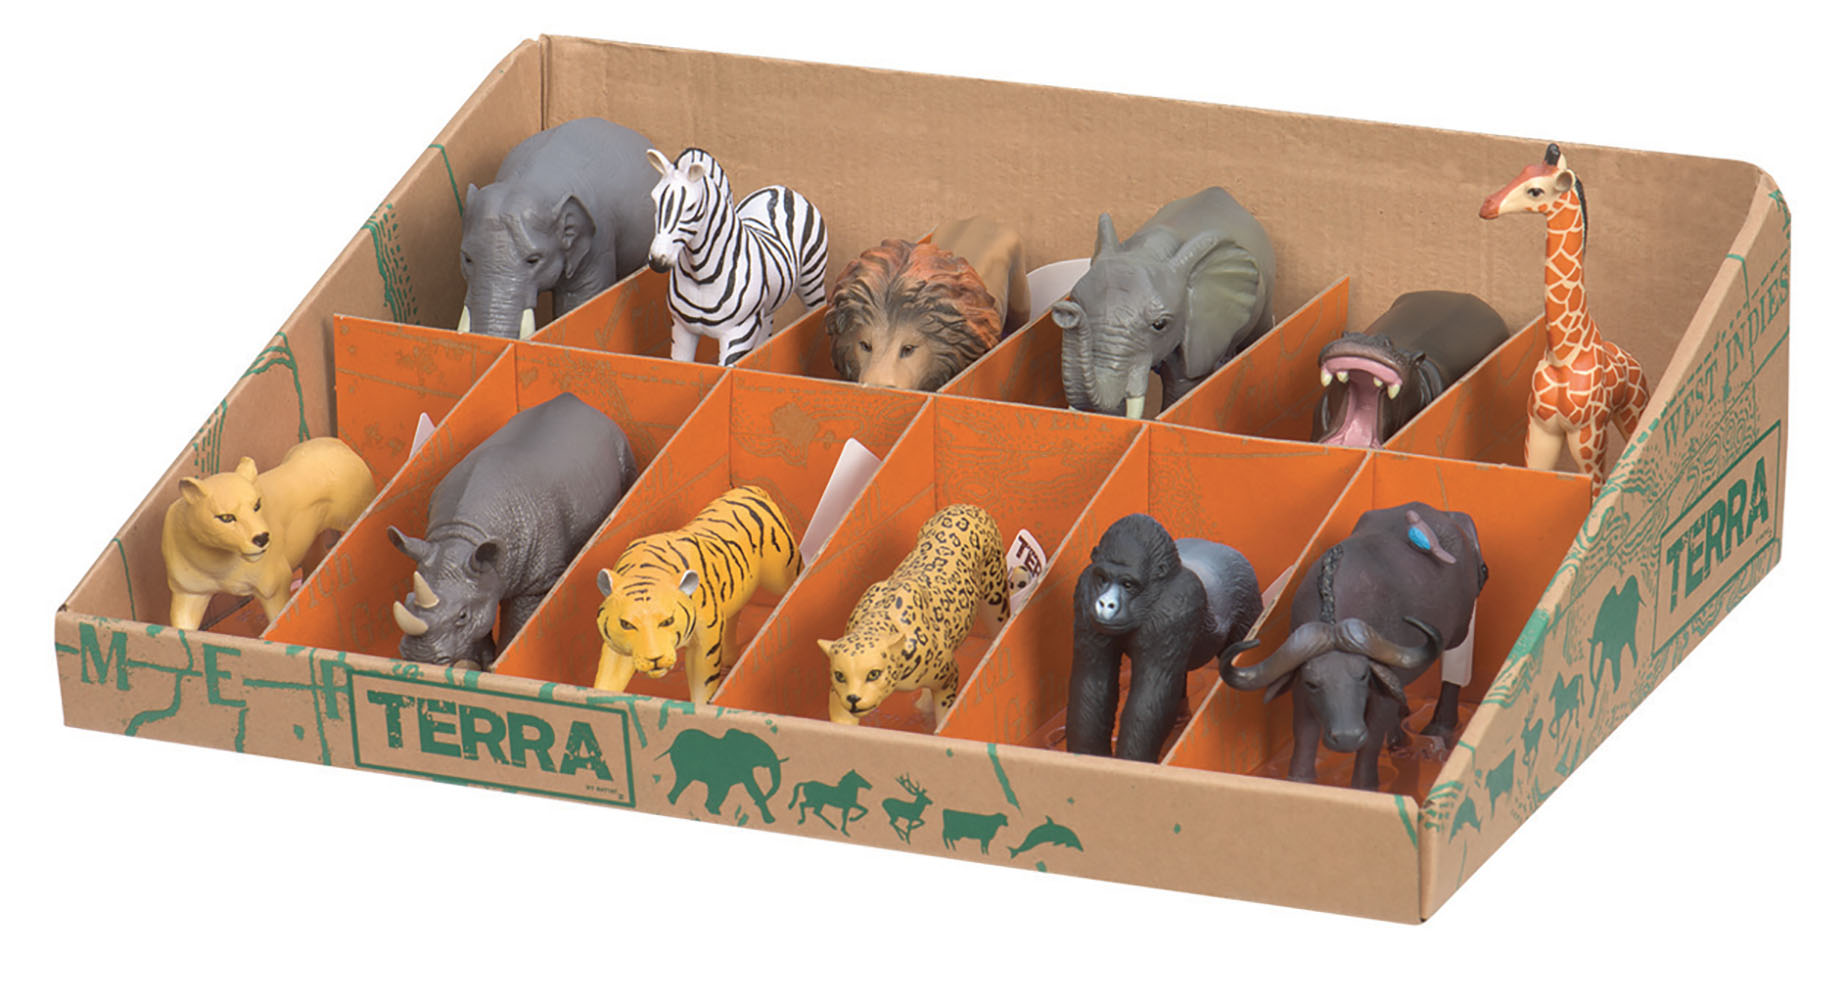 Terra - Animaux sauvages assortis